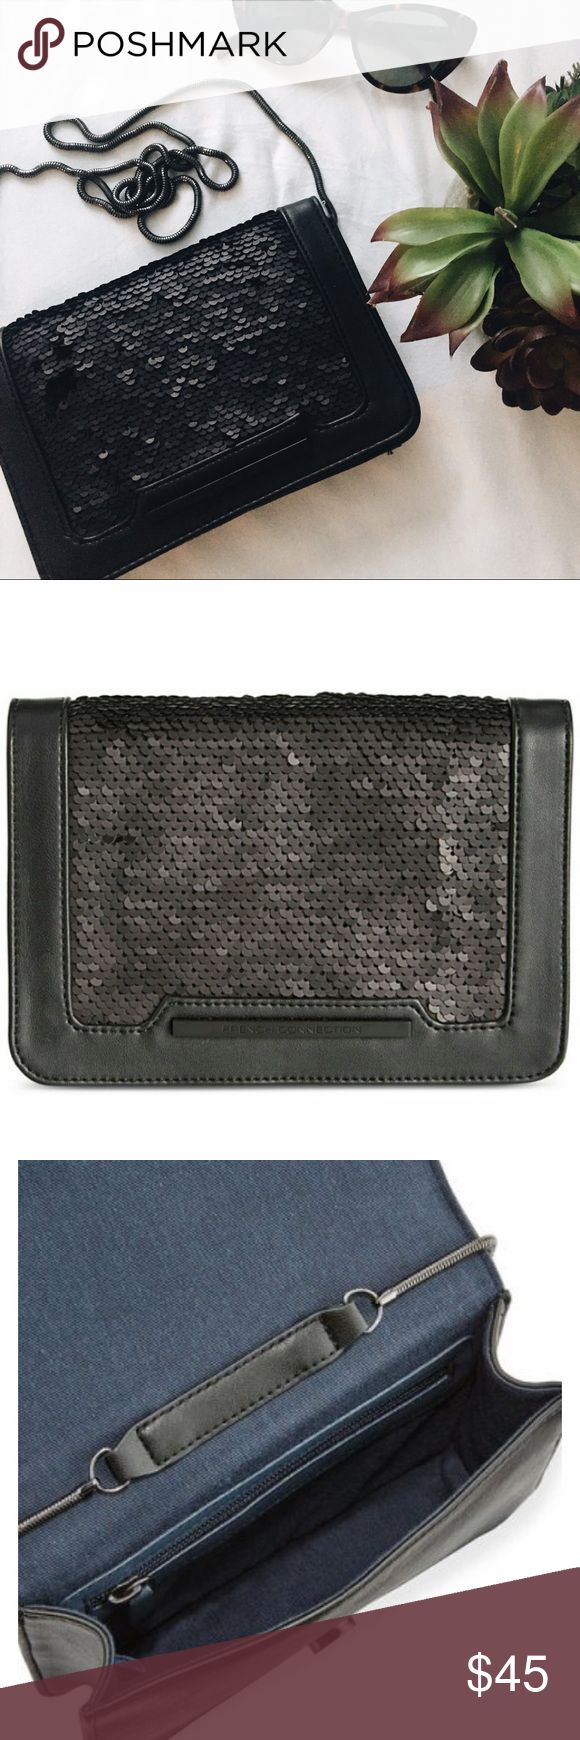 NWOT French connection matte black Brand new! Never used. All sequins are still in tact. The picture I just realized has the sequins flipped up but I promise they are all there in perfect condition! They are a matte black and the clutch is black leather. A hidden strap that is a slinky metal can be worn in the bag for a clutch style or outside the bag as a cross body!  23'' drop and magnetic snap closure French Connection Bags Clutches & Wristlets